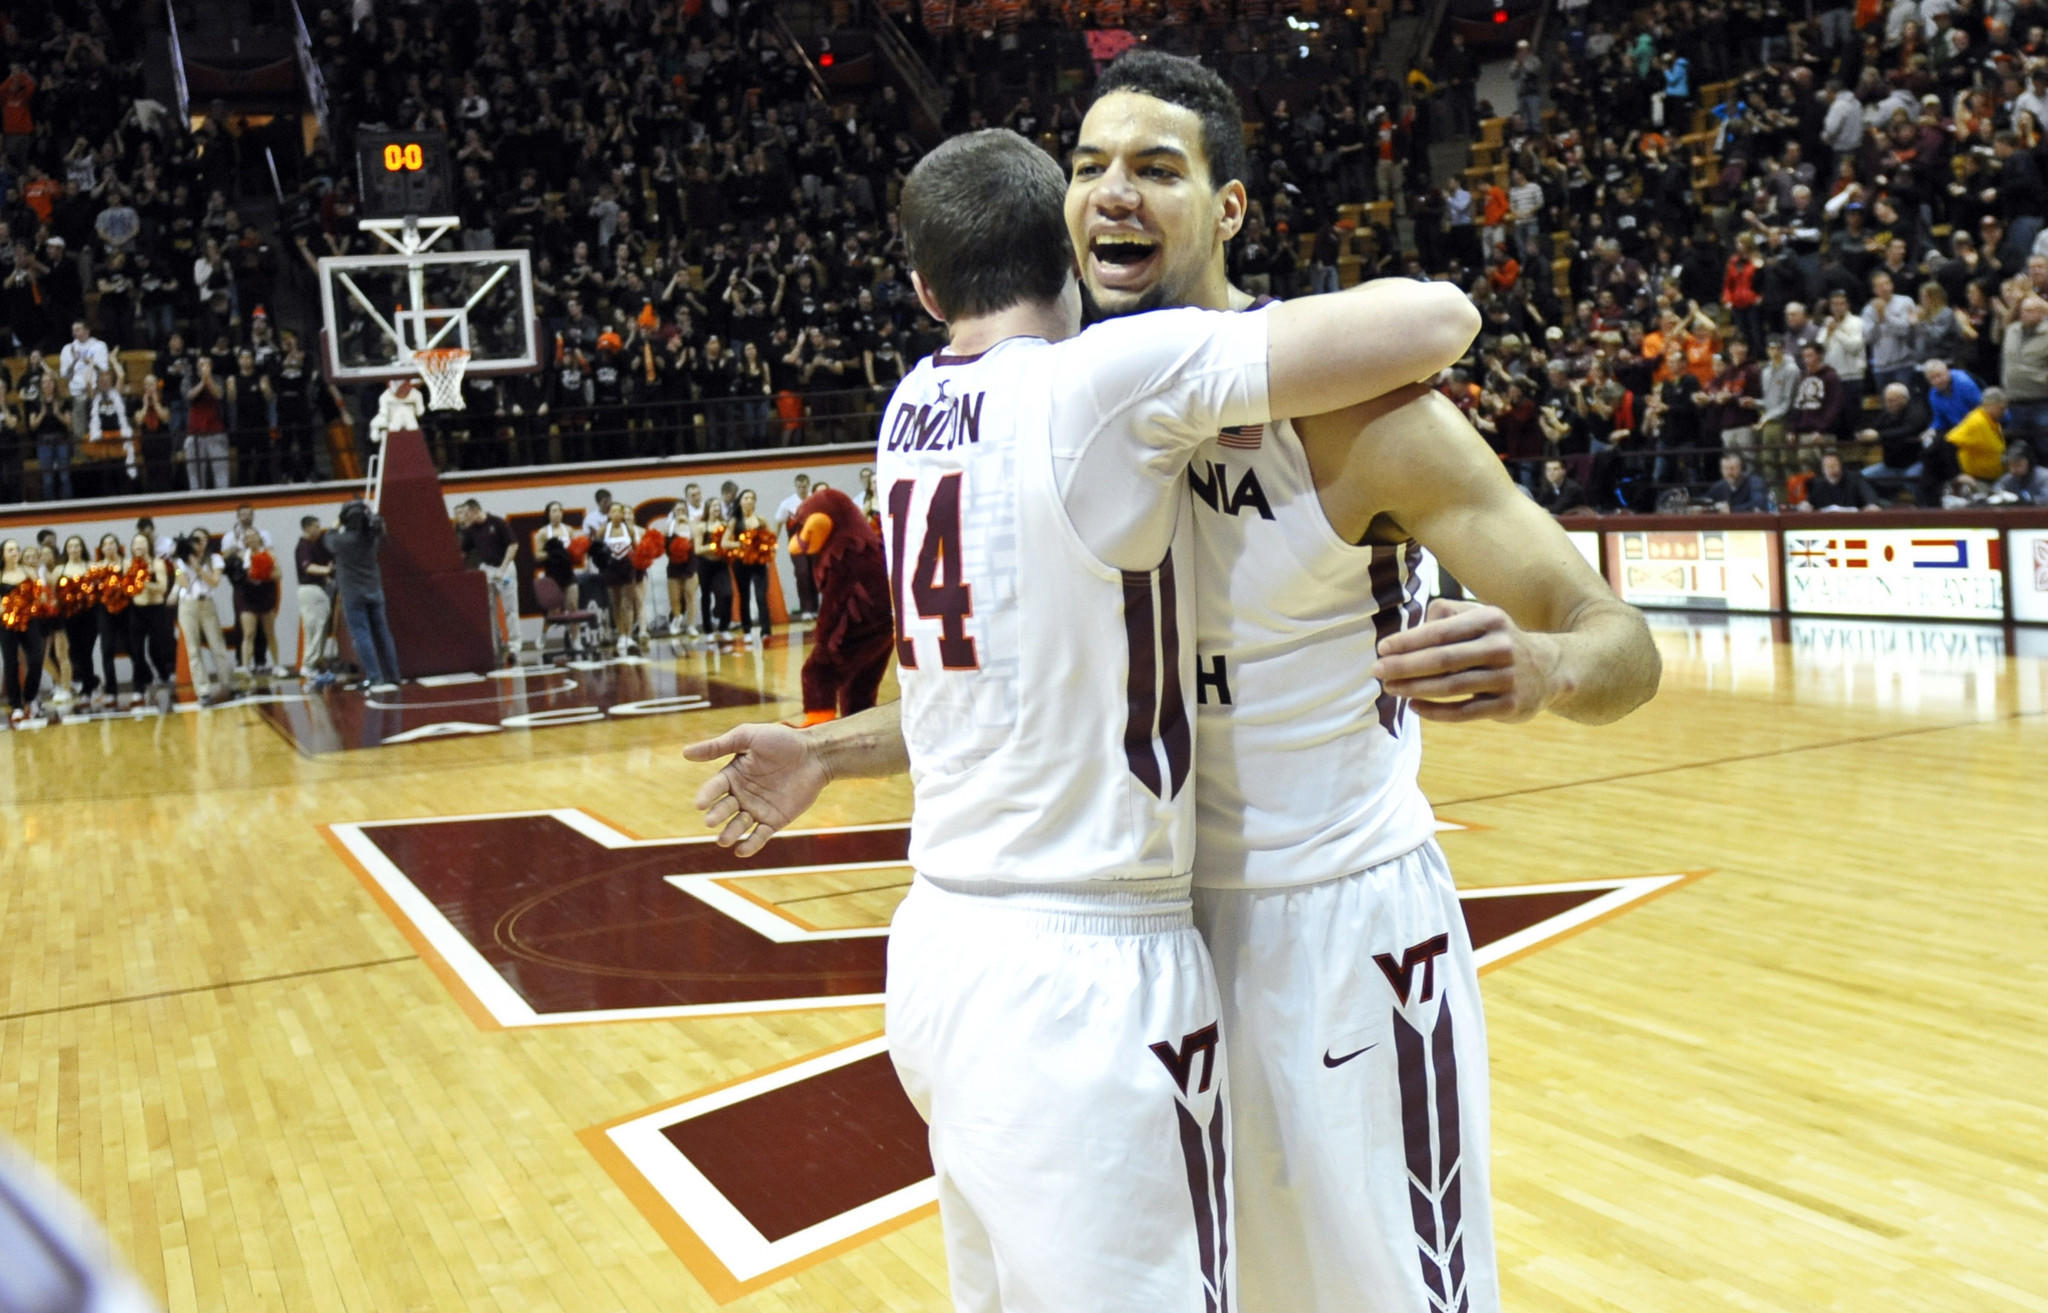 Virginia Tech's Joey van Zegeren and Greg Donlon (14) celebrate after the Hokies' 52-45 win against Miami on Saturday in Blacksburg.